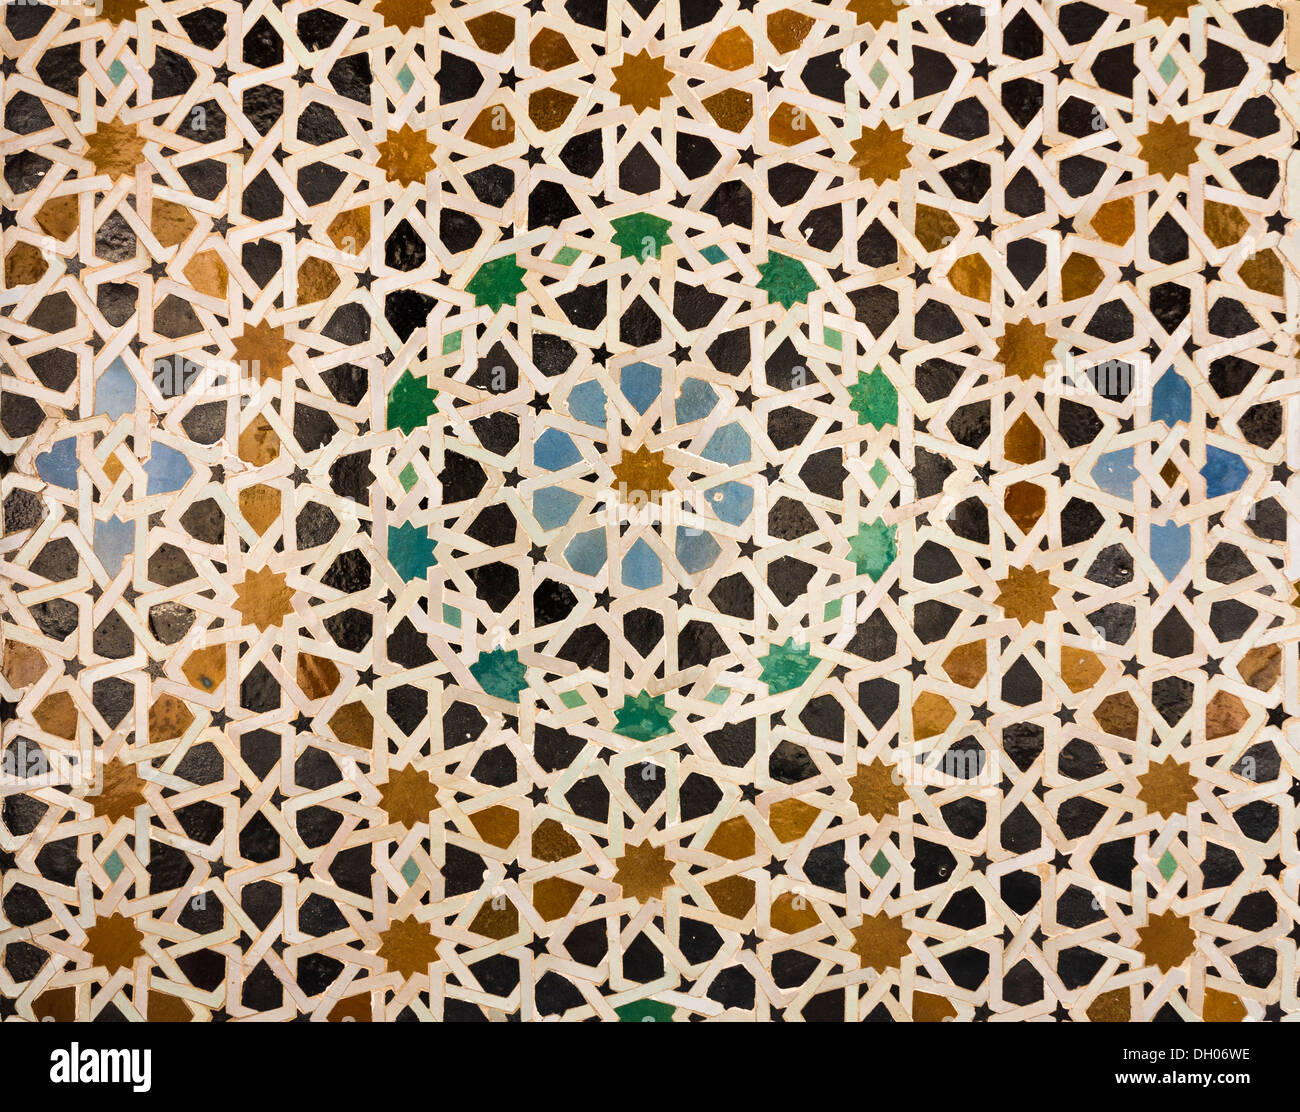 Oriental pattern mosaic of tiles in a mosque in Morocco forming concentric  circles